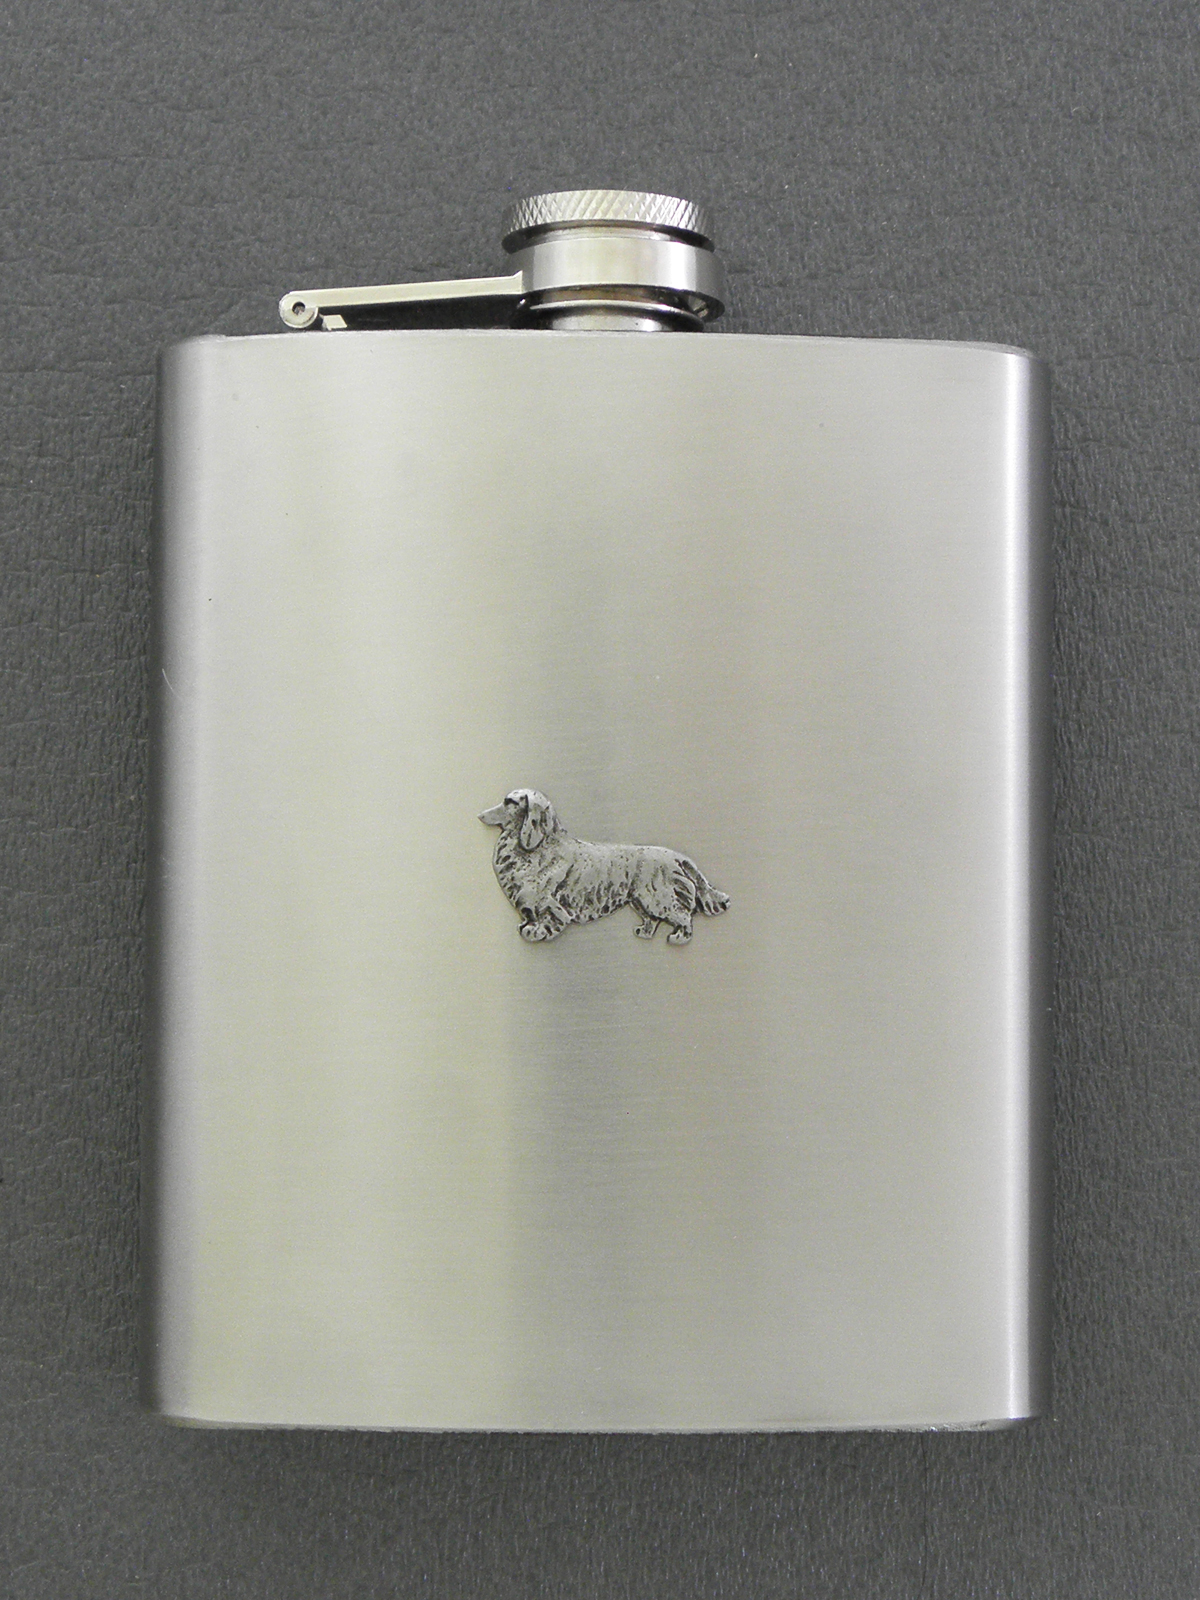 Dachshund longhaired - Hip Flask Figure